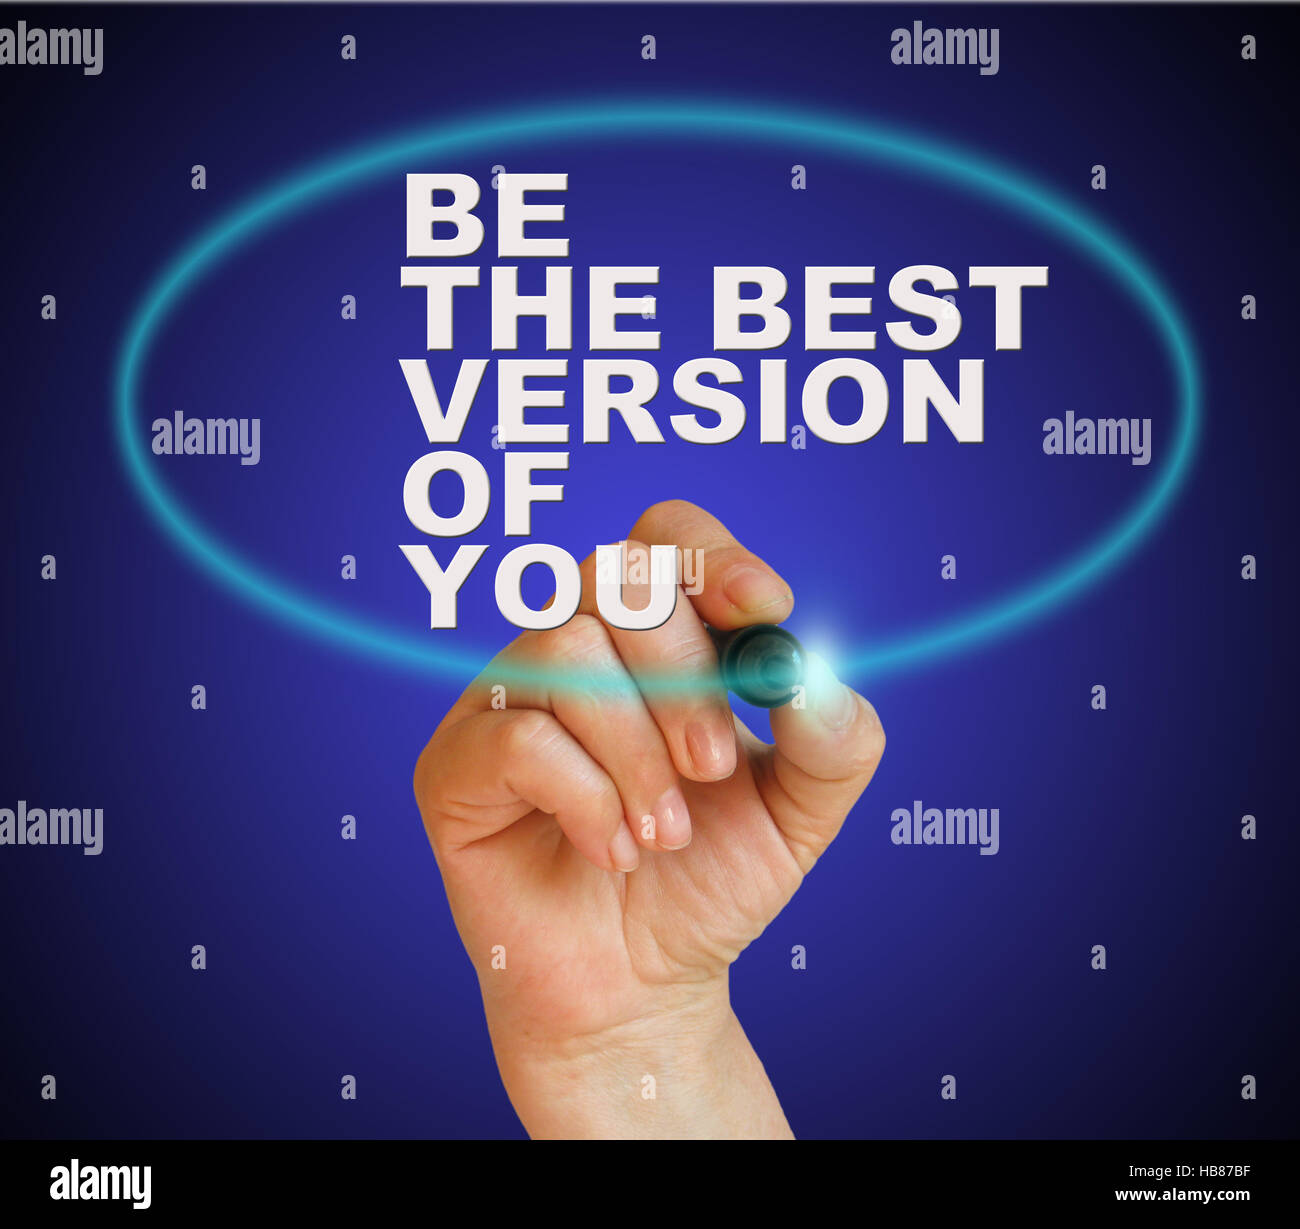 be the best version of you - Stock Image